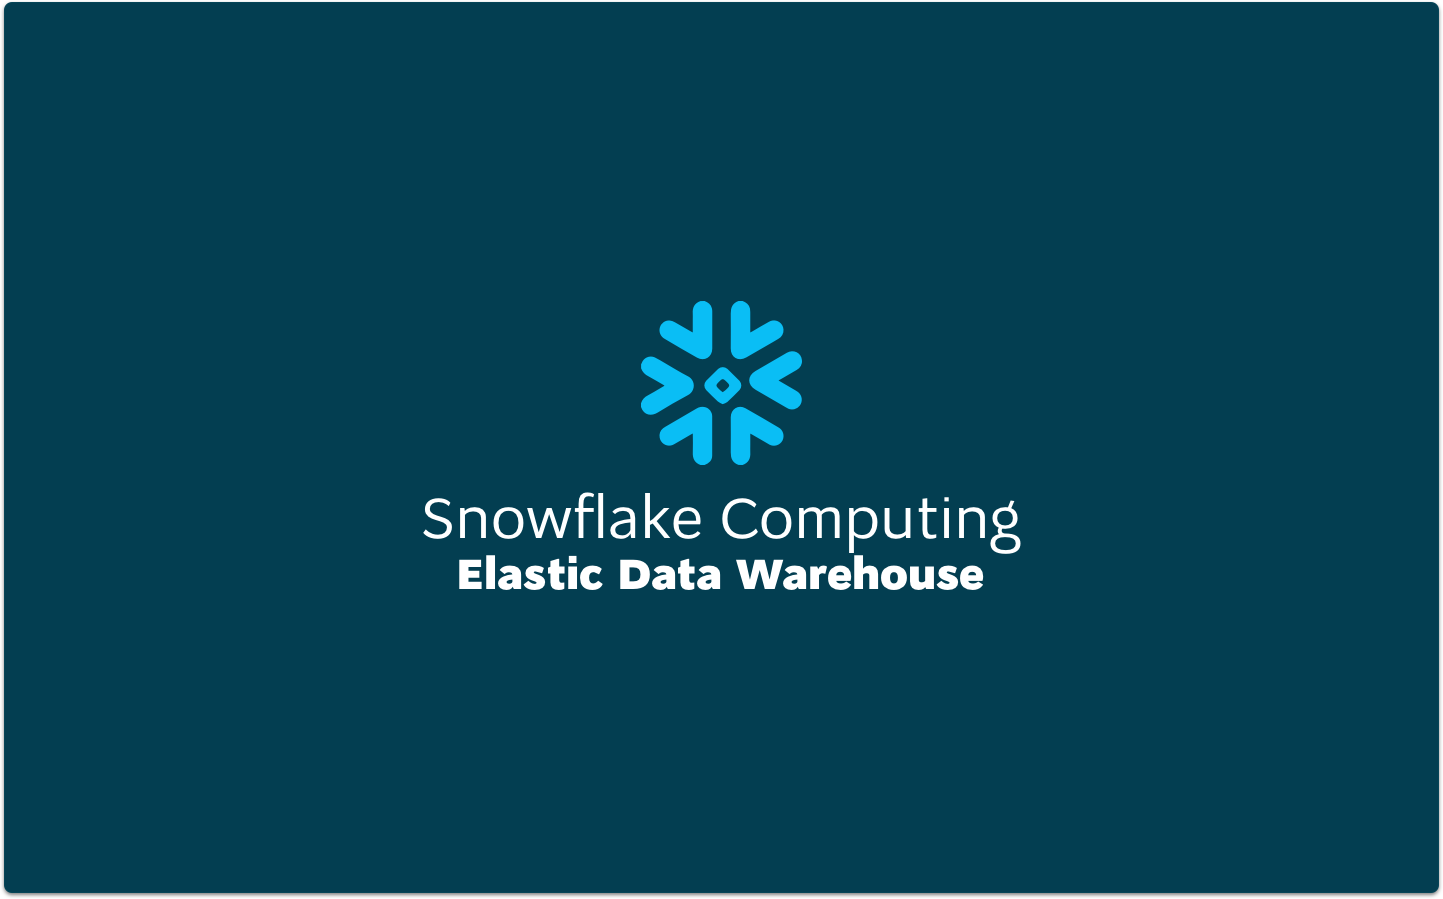 8 Reasons To Consider An Anytime Modern Snowflake Data Warehouse